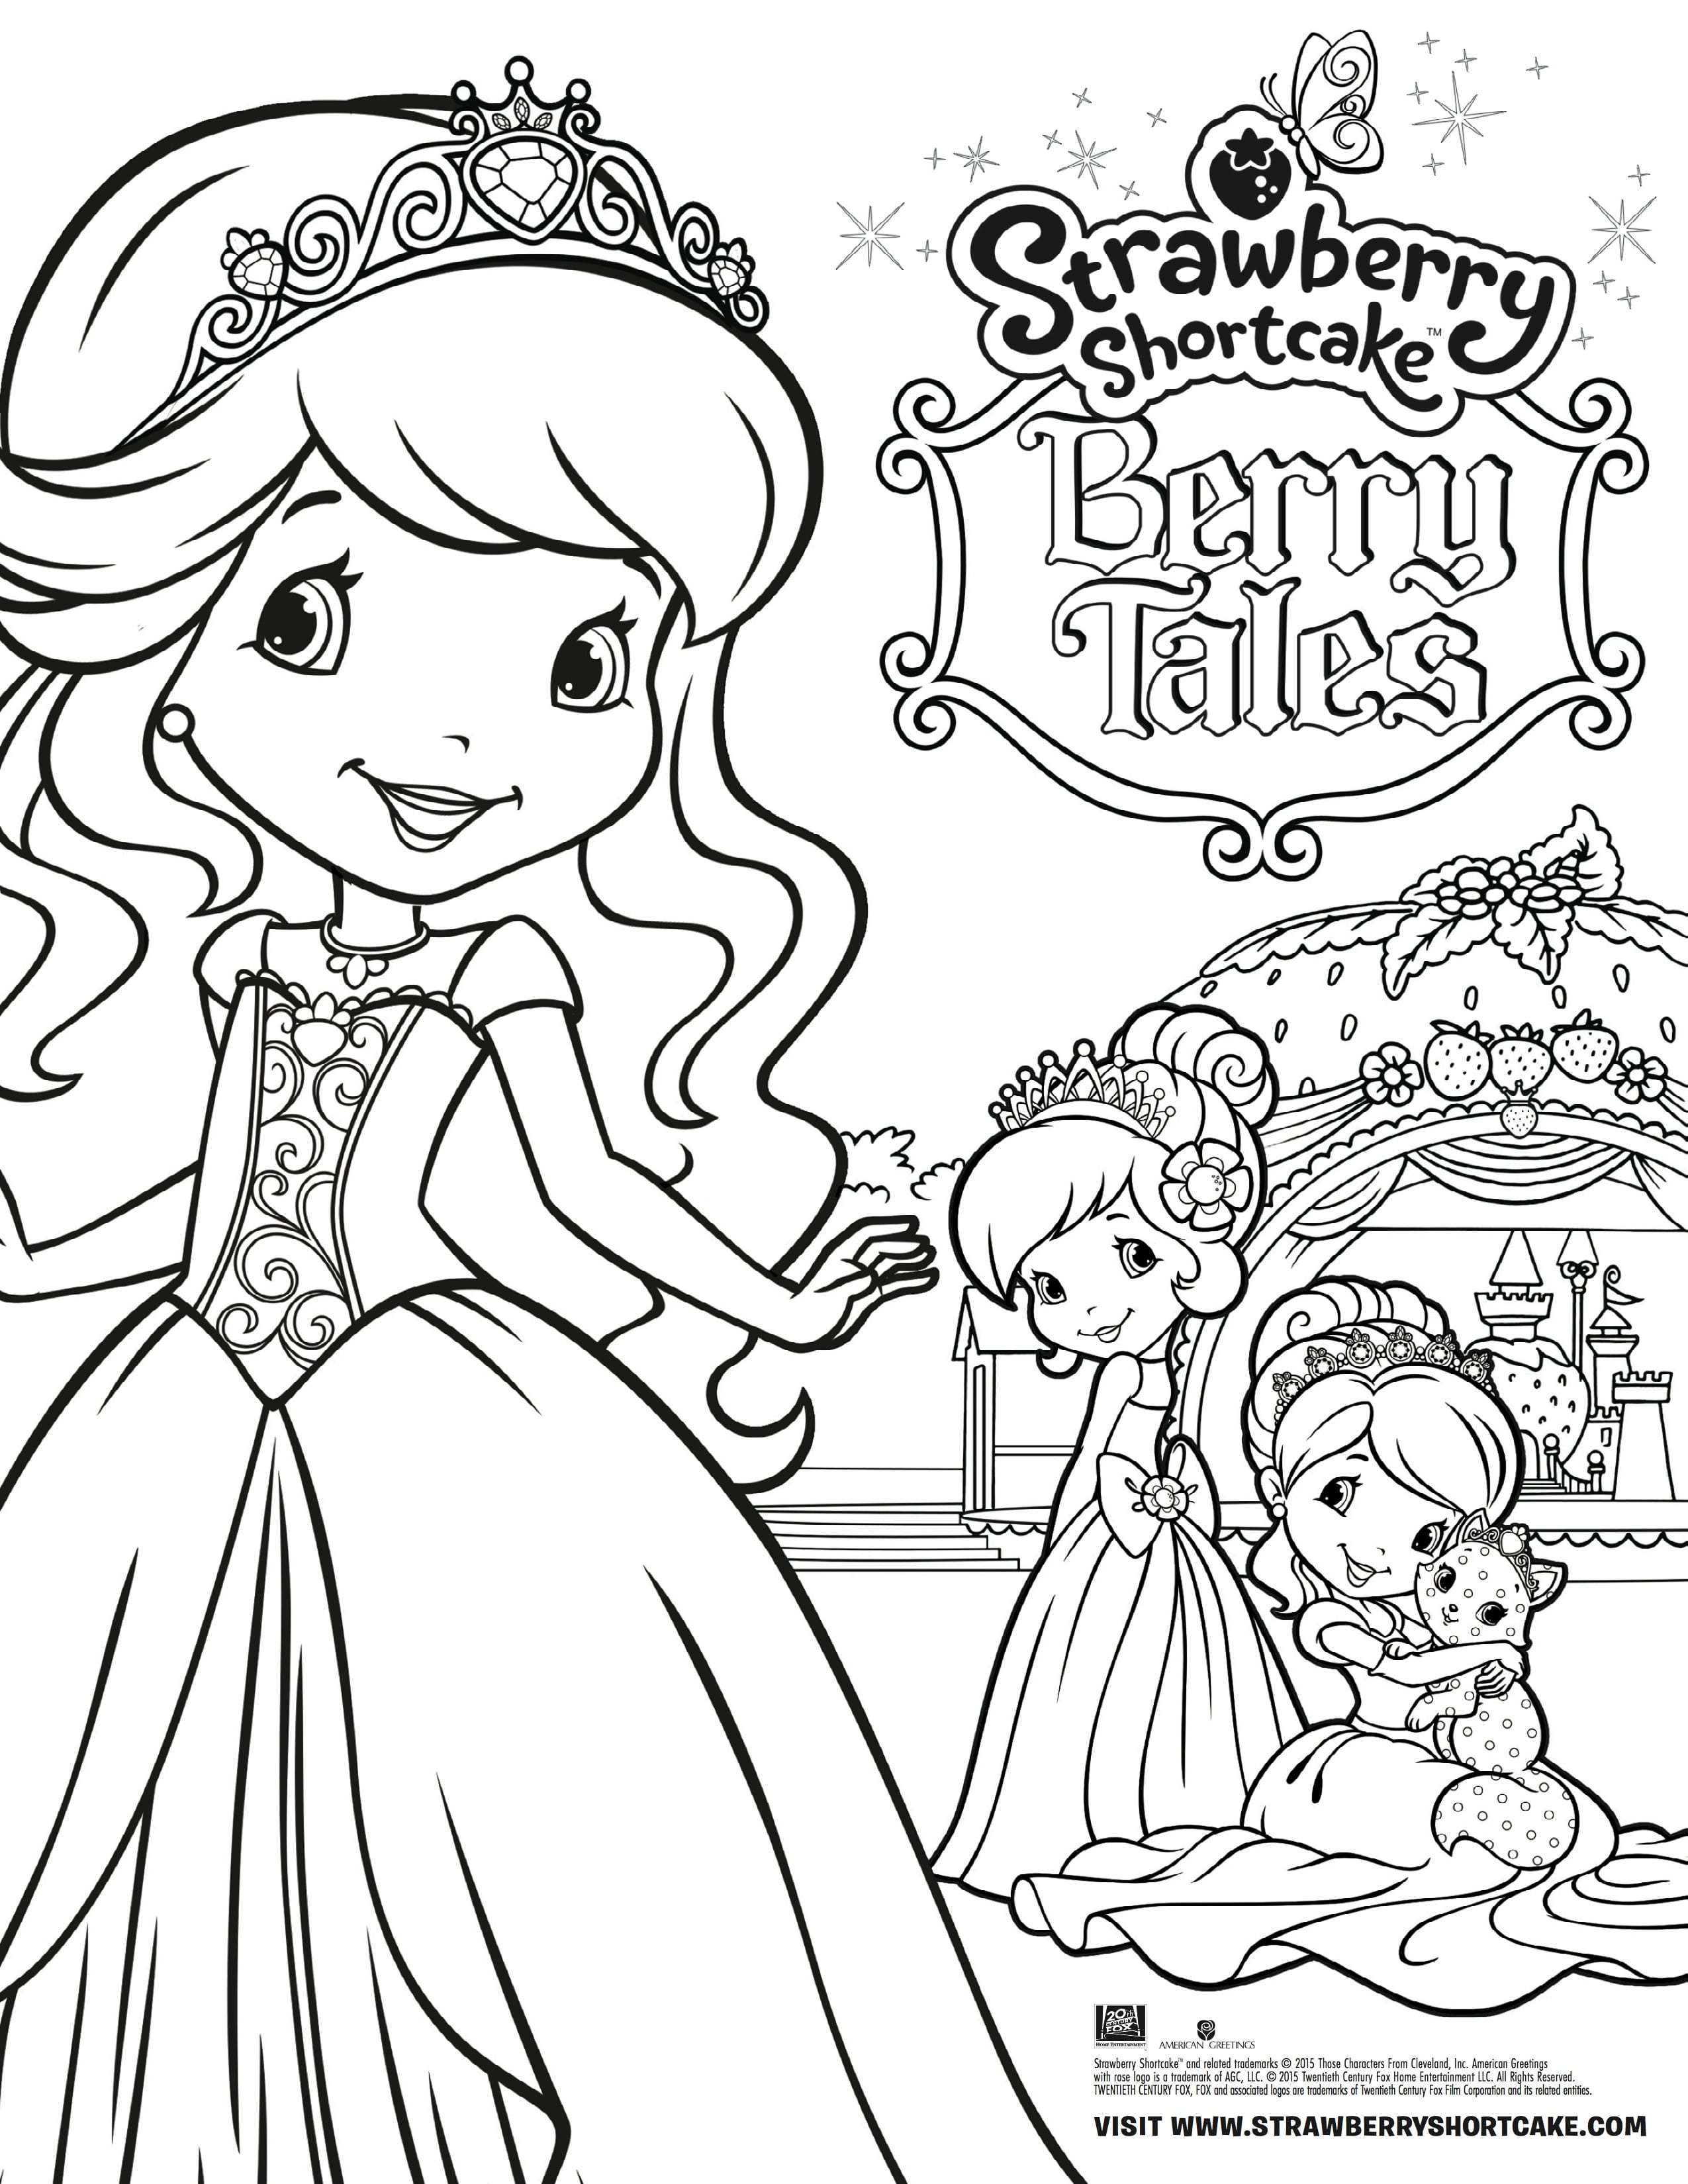 Strawberry Shortcake: Berry Tales Takes the Stage Coloring